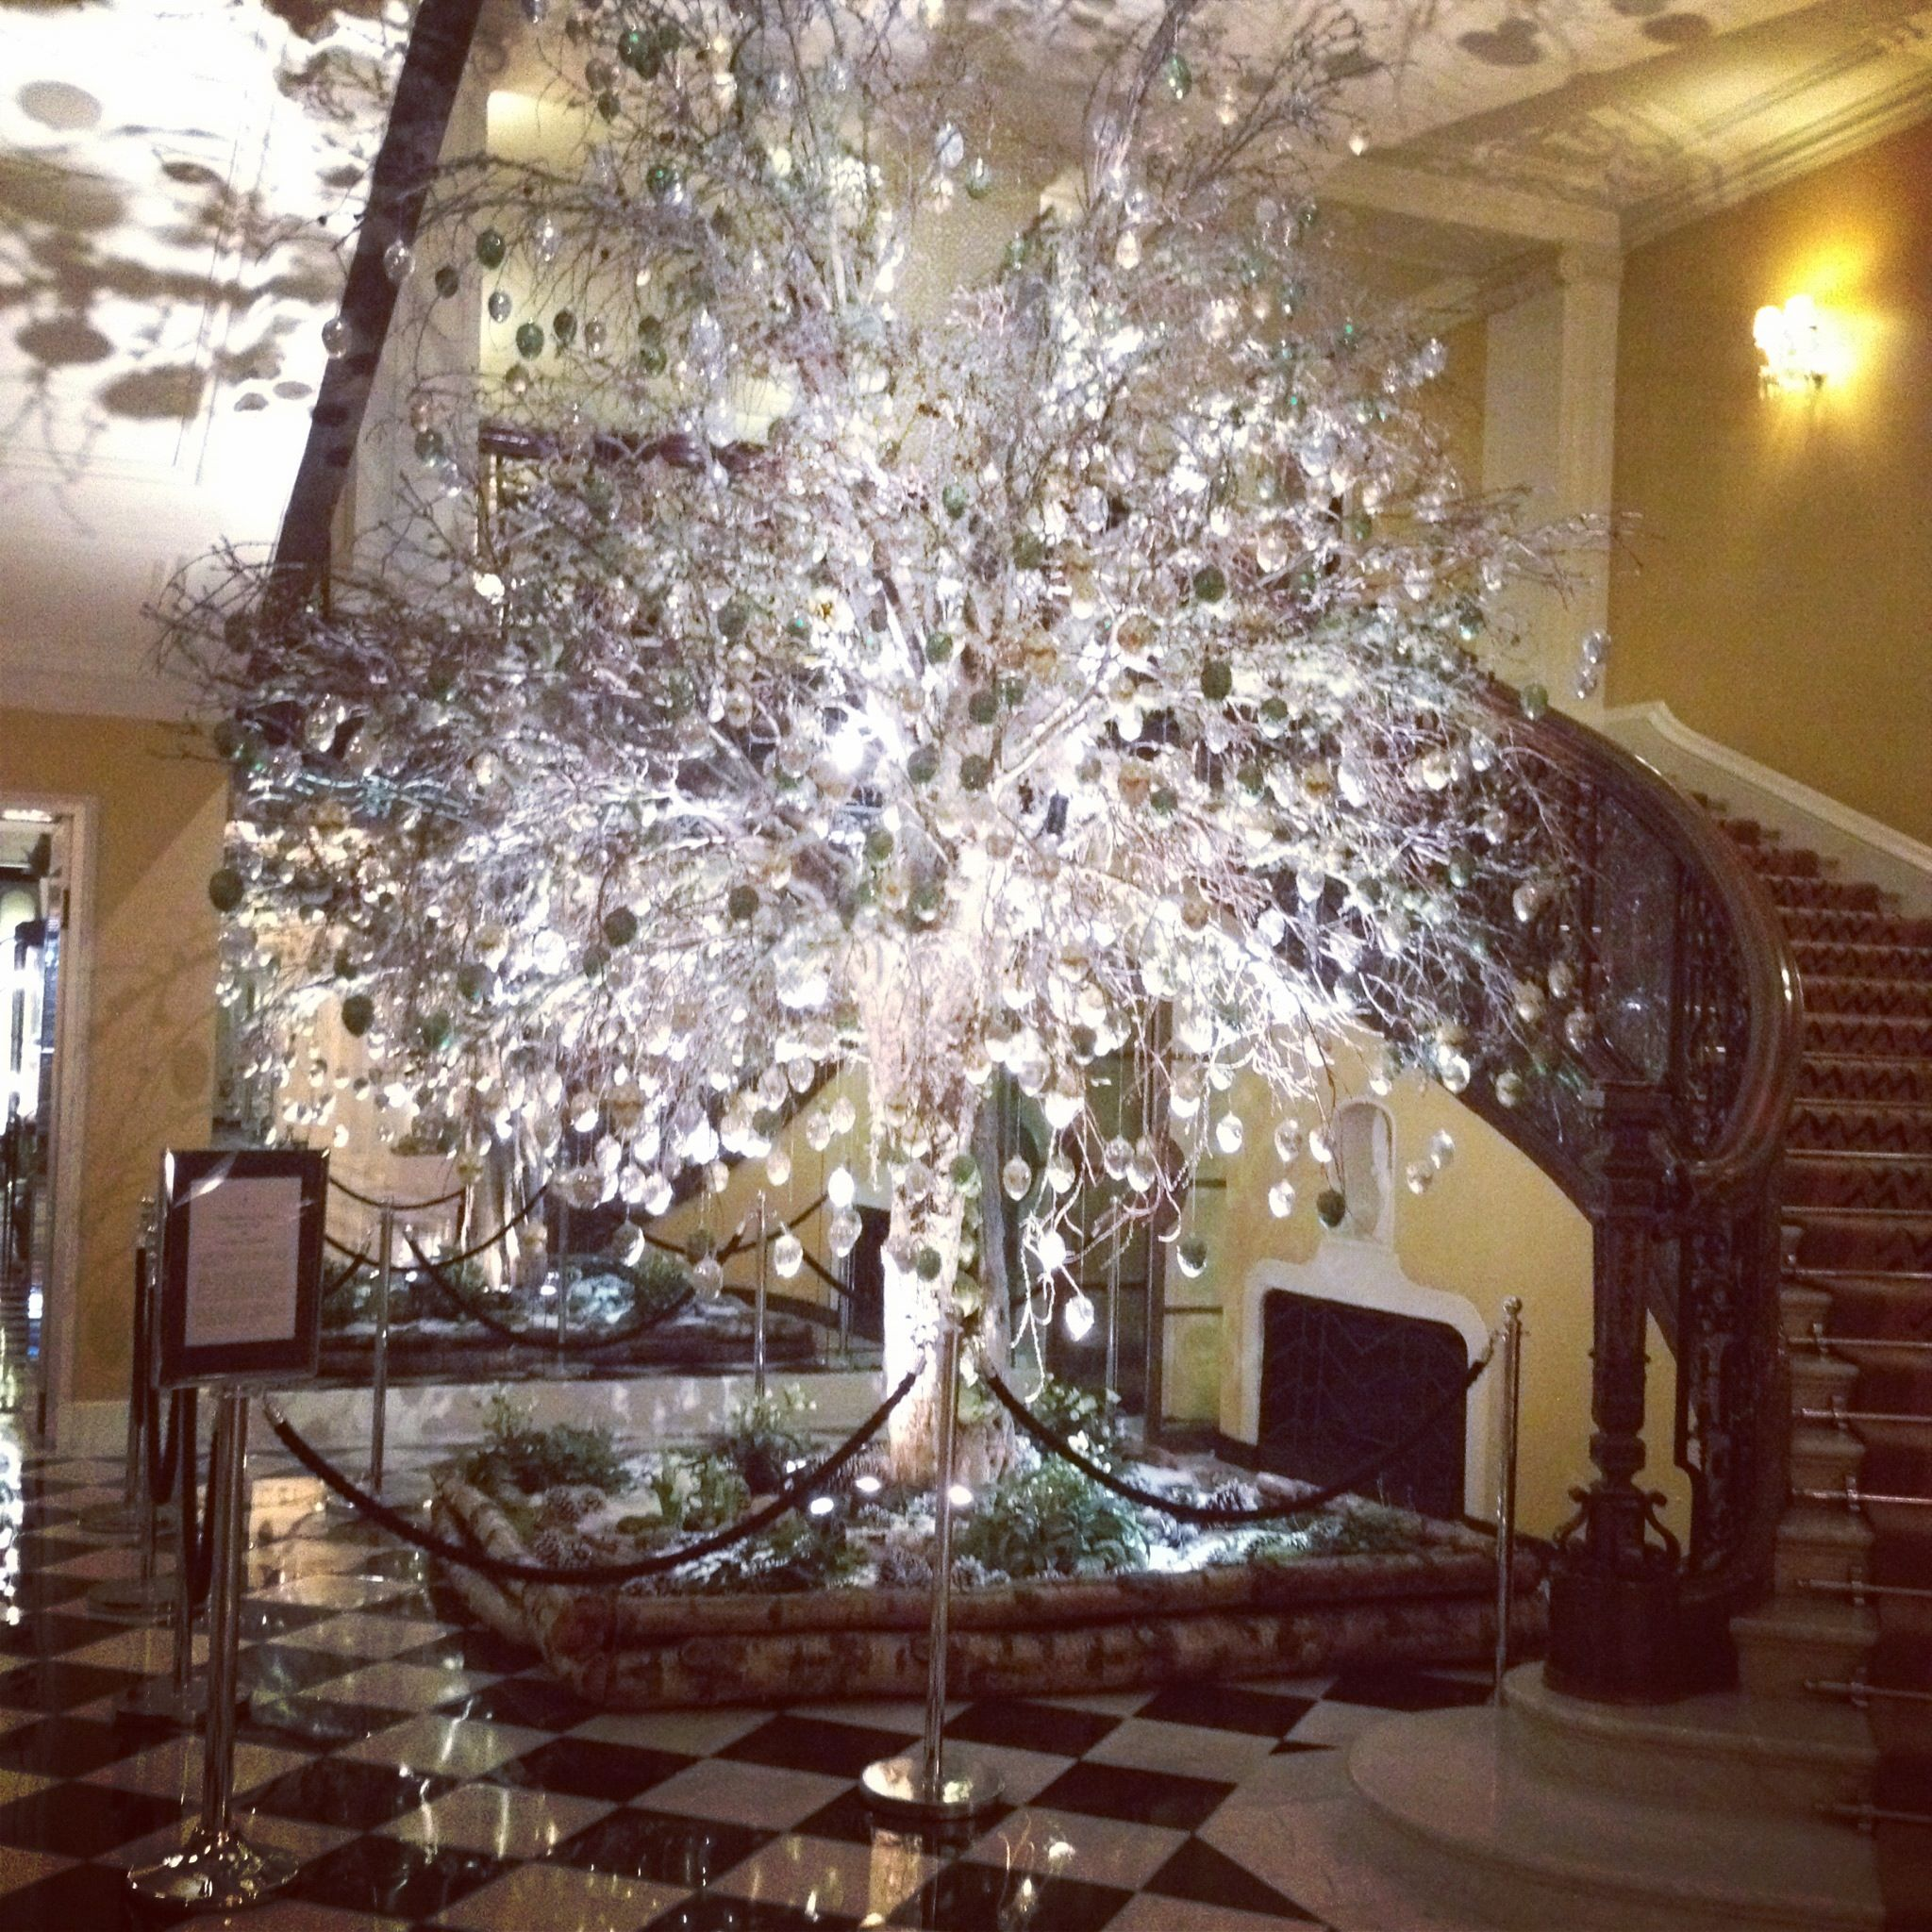 Christmas Decorations Ideas For Hotels: Claridges Hotel 2012, Christmas Tree Designed By Kally